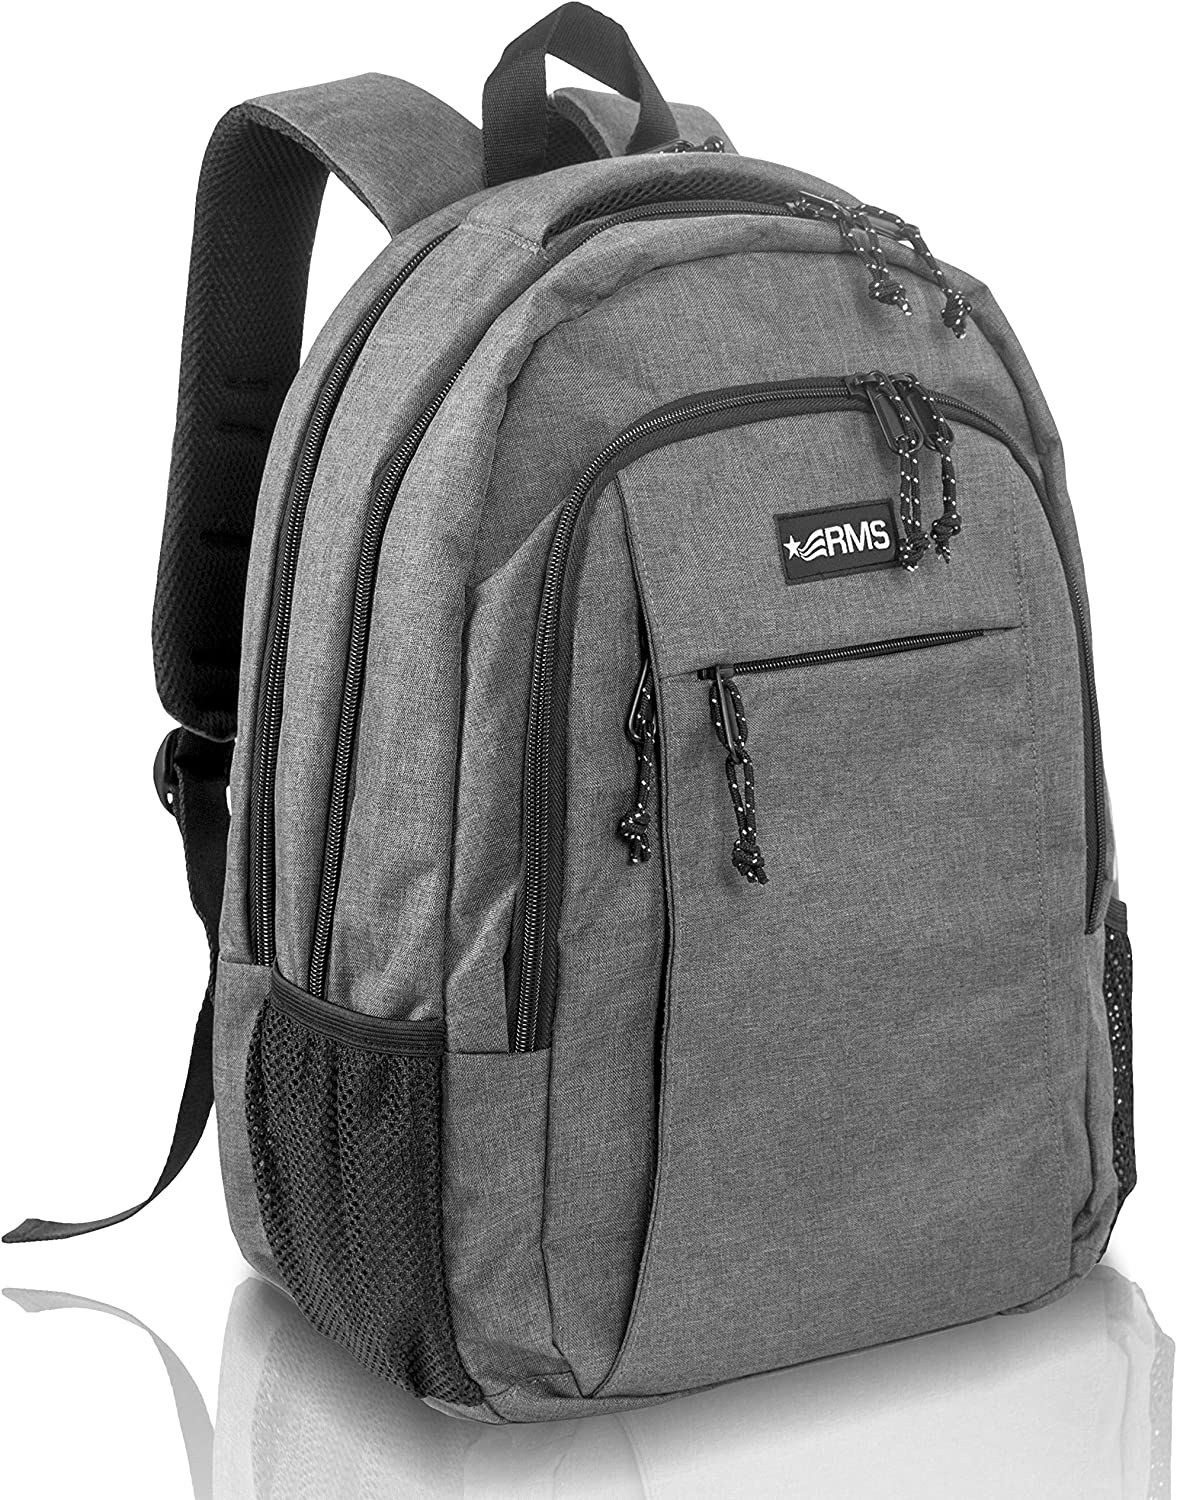 RMS Travel Backpack for School or Business – Anti Theft Laptop backpacks for Men, Women or Students – Fits Up to 15.6 inch Notebook Gray